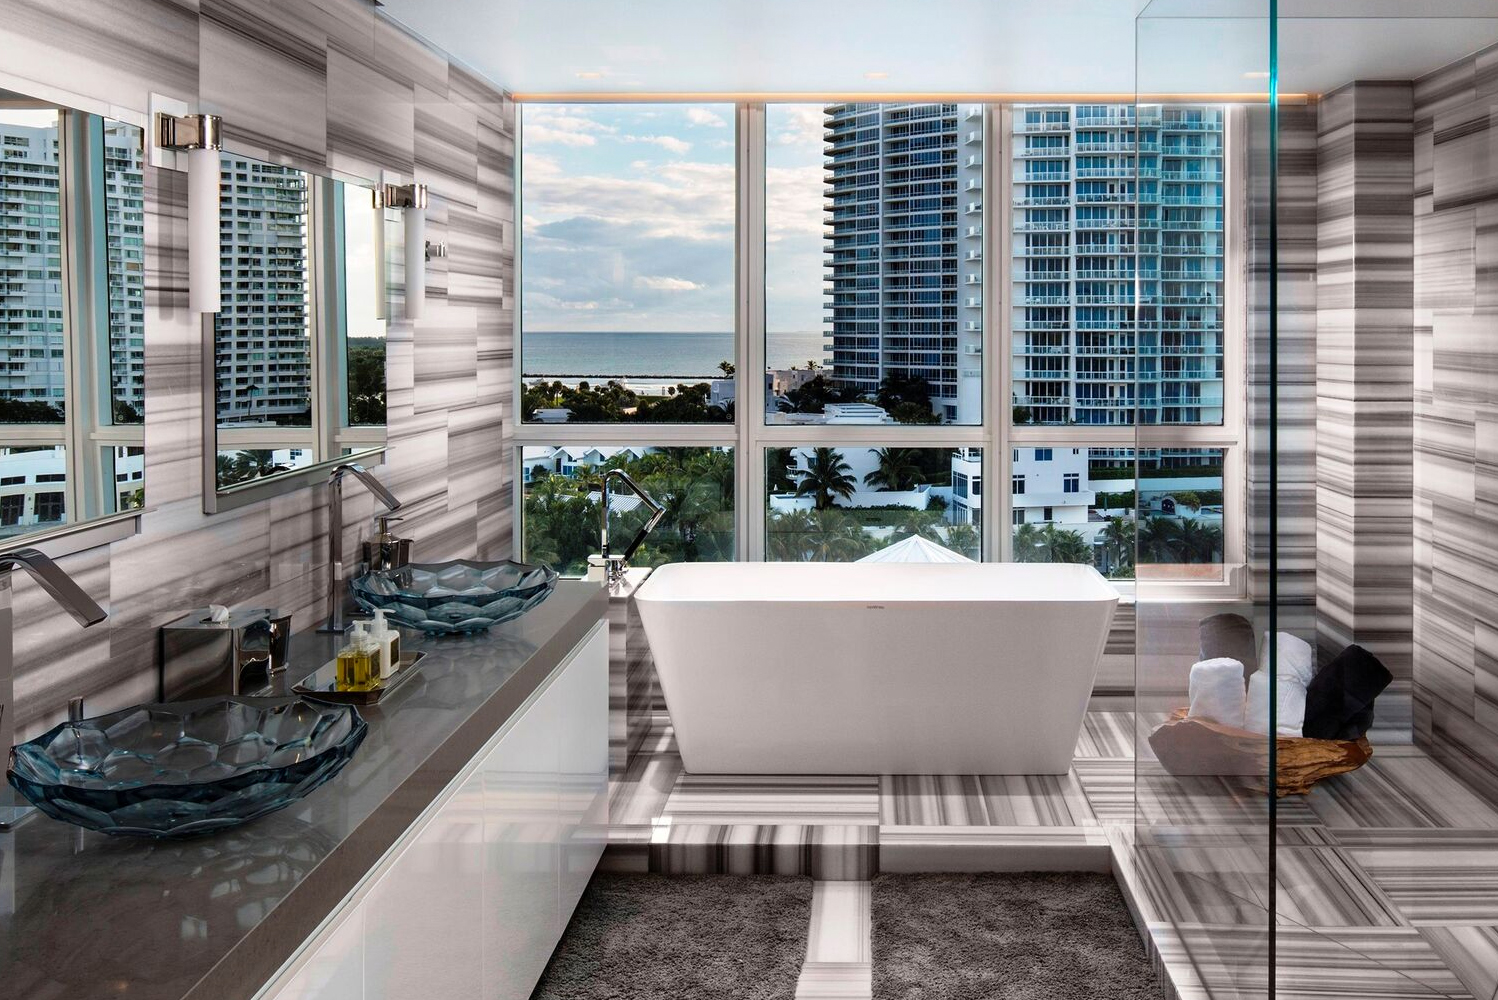 The rooms have Italian marble bathrooms and balconies overlooking the skyline of South Beach or views of the Atlantic Ocean.